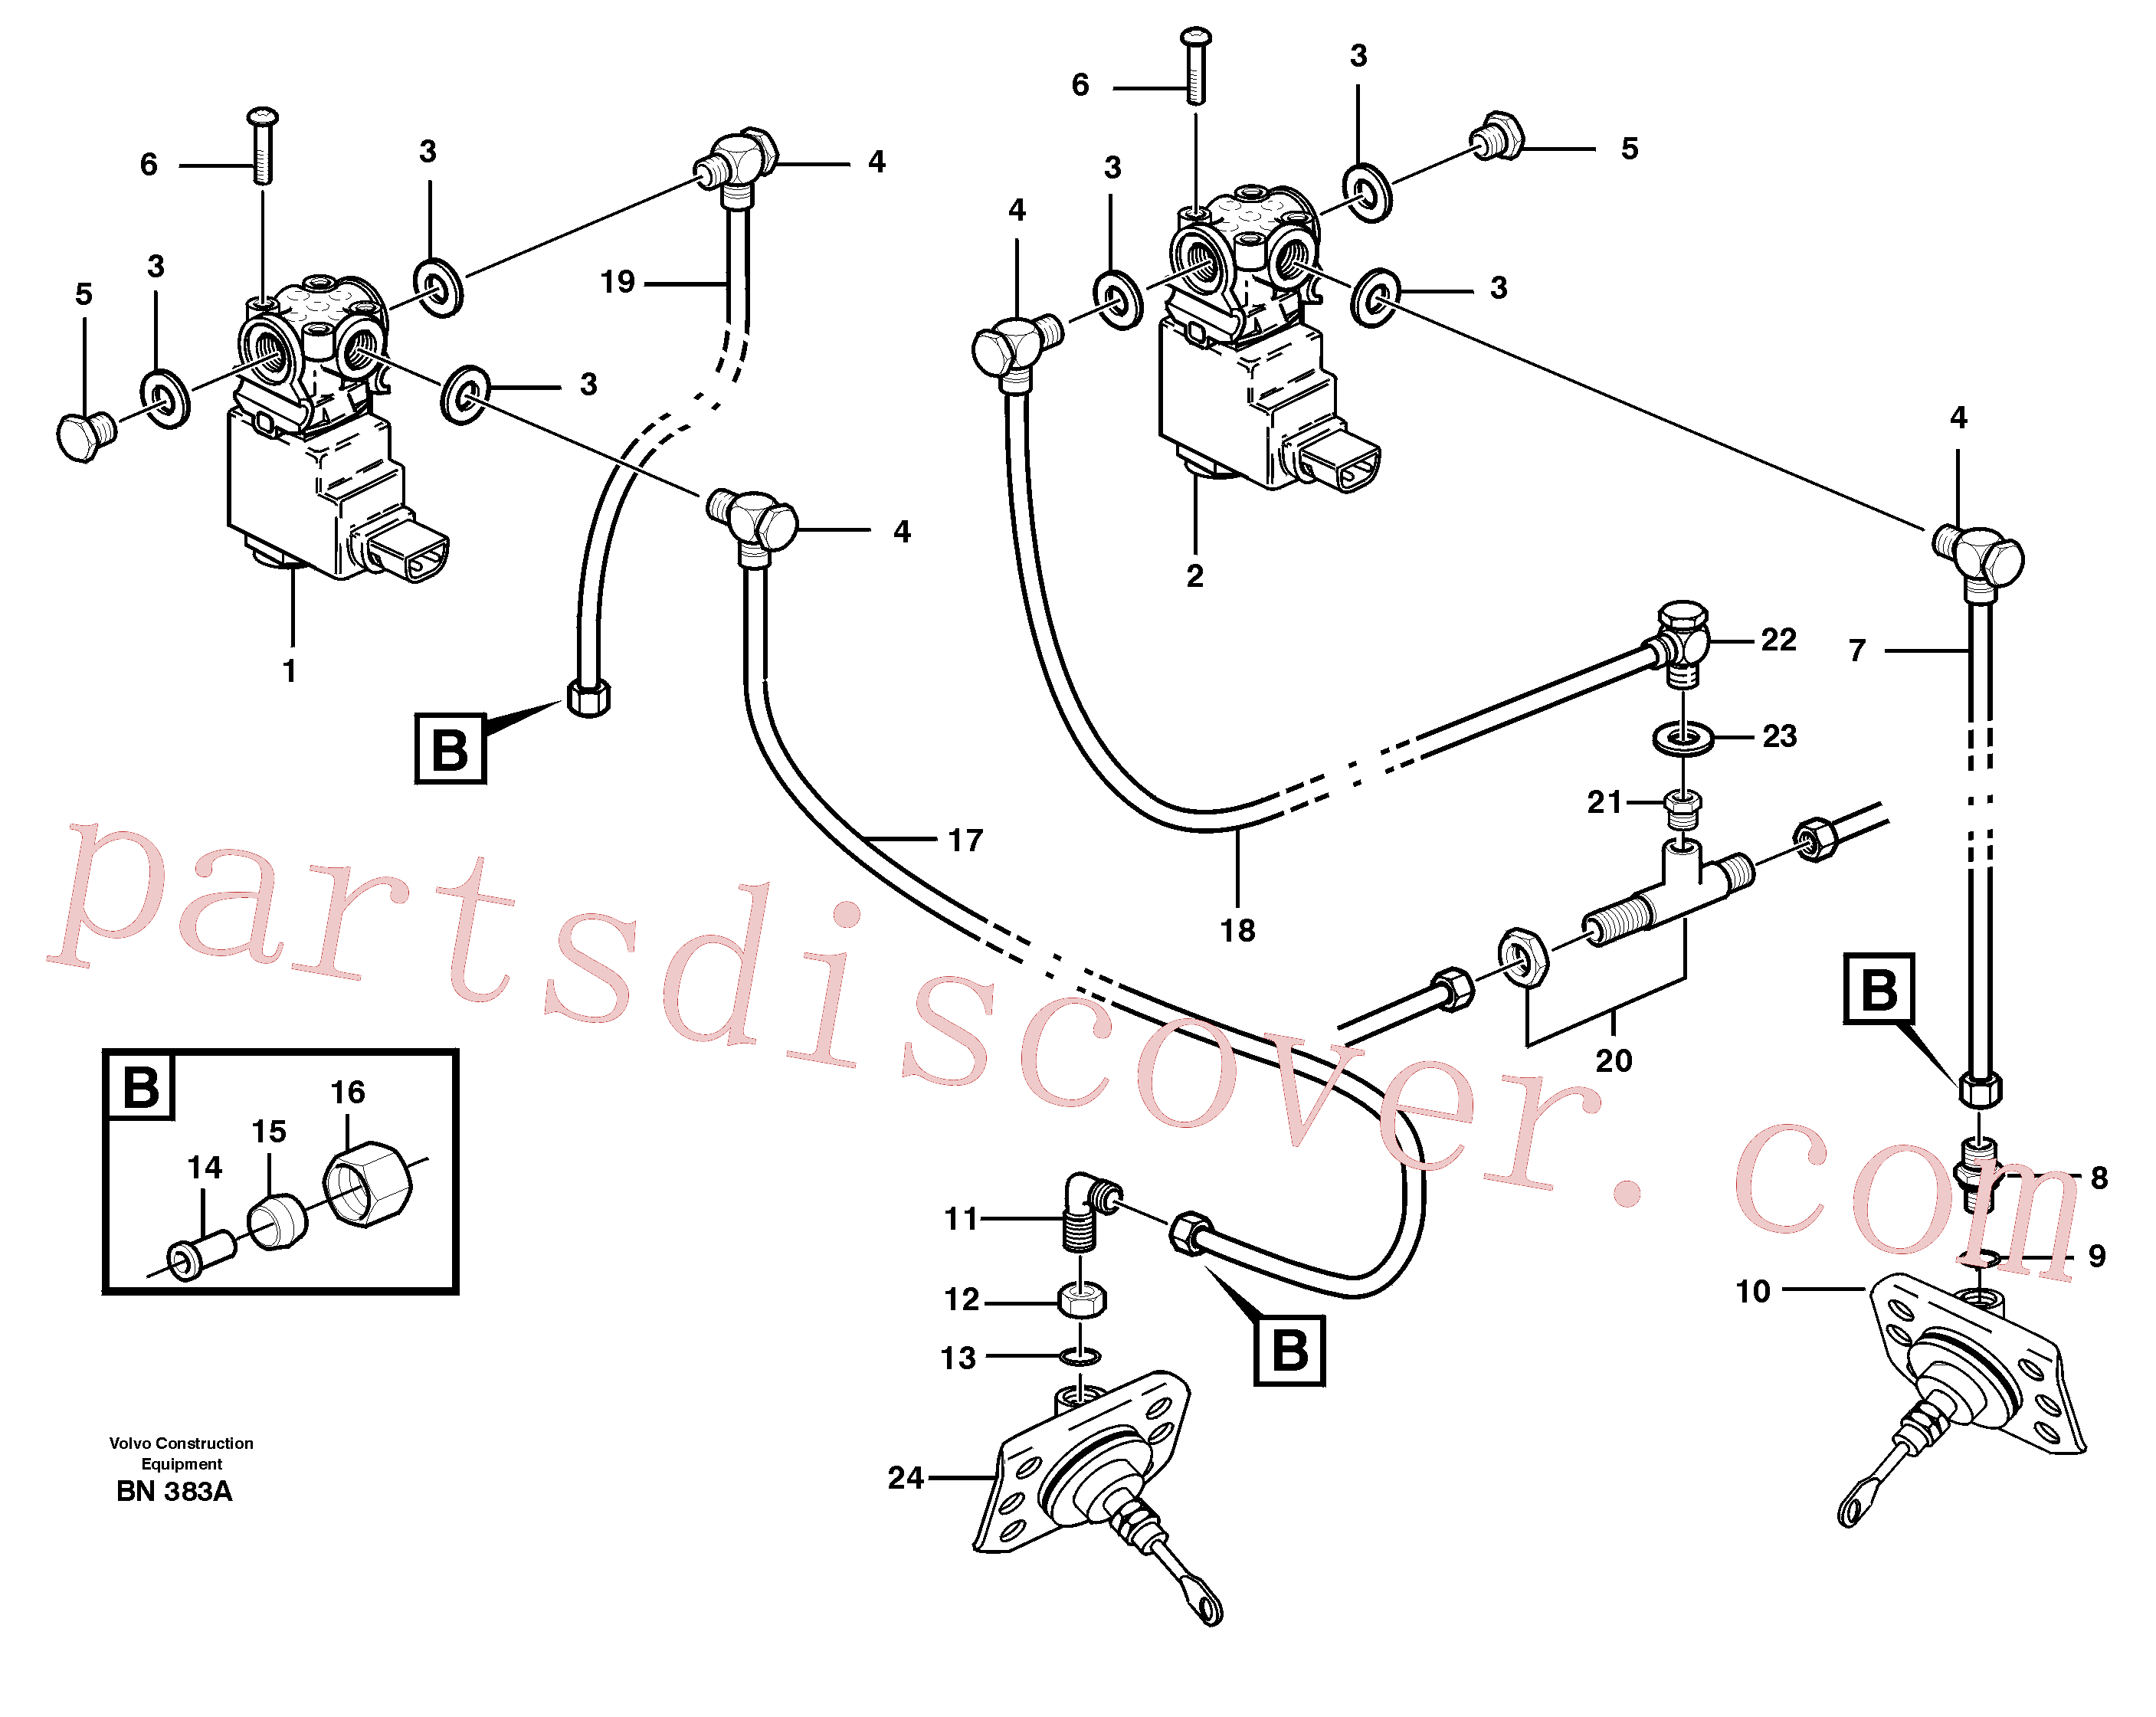 VOE960629 for Volvo Pneumatic system, diff lock, cab(BN383A assembly)